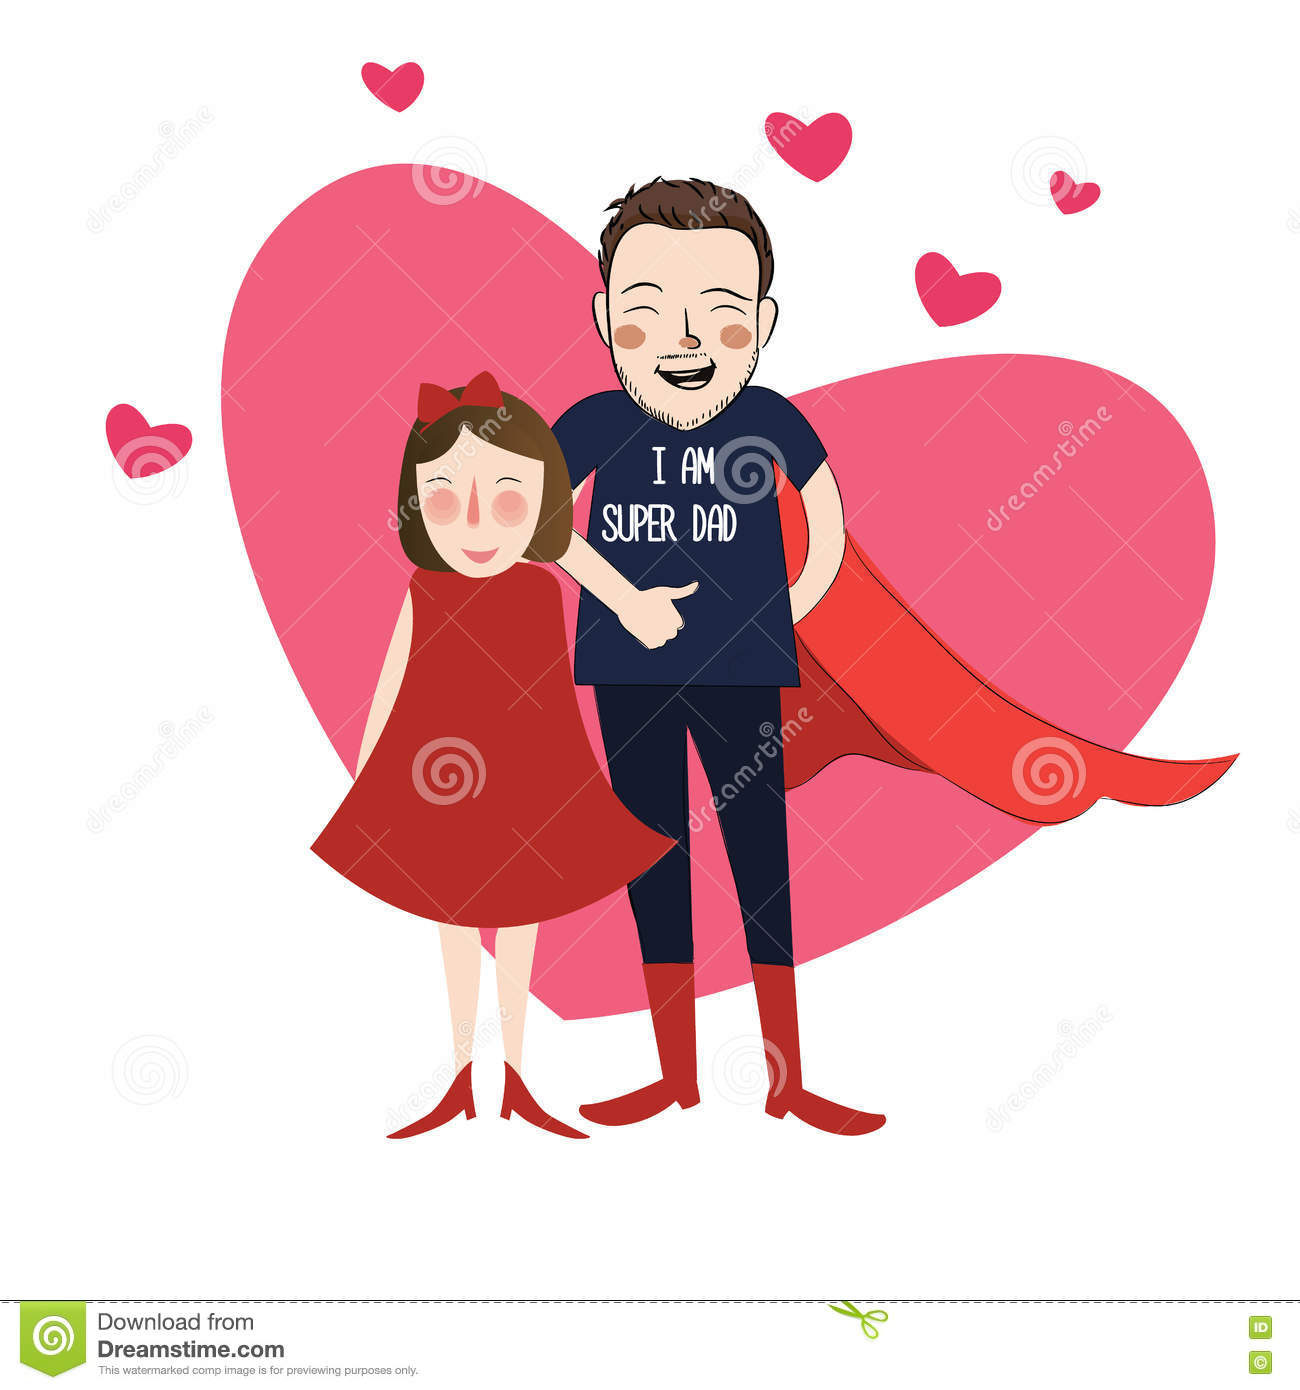 I Am Super Dad Illustration Cartoon Girl Daughter With Her Lovely Father Stock Vector Image